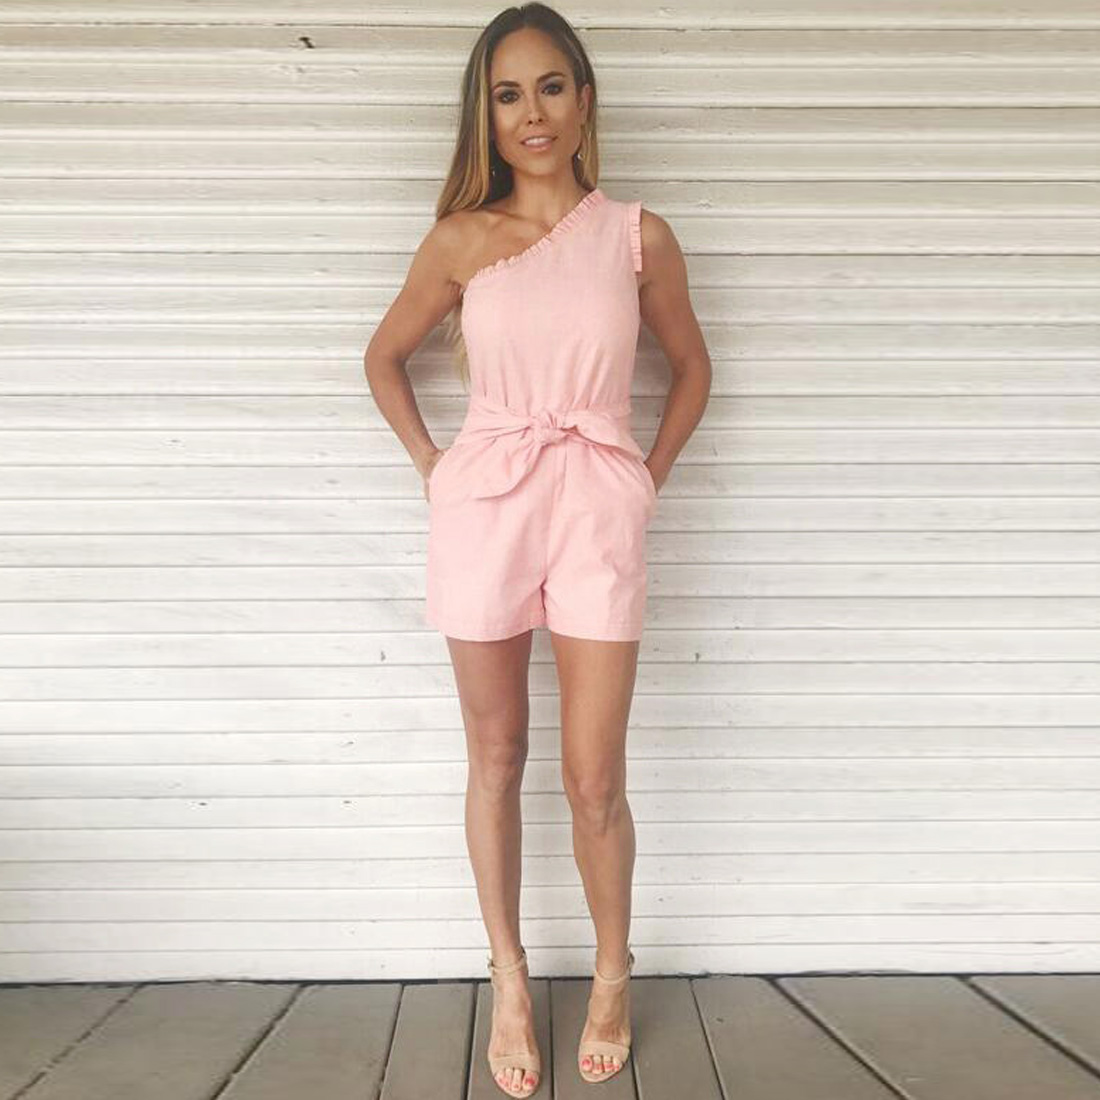 YJSFG HOUSE Sexy One Shoulder Short Jumpsuit Rompers Women One Piece Slim Bandage Bodysuit Playsuit Solid Pink Summer Catsuit